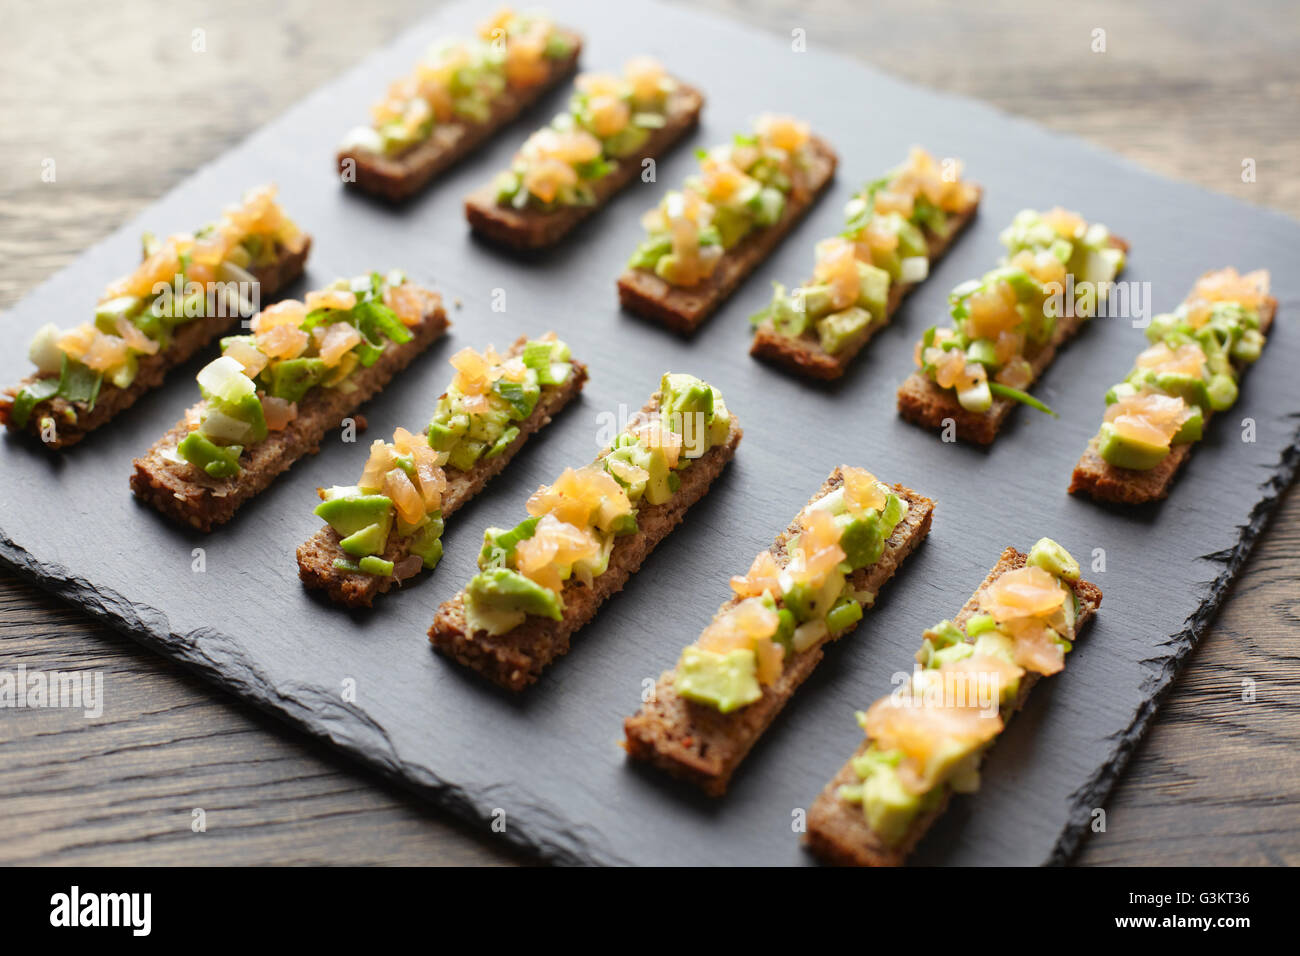 Guacamole, smoked salmon and rye bread canapes - Stock Image